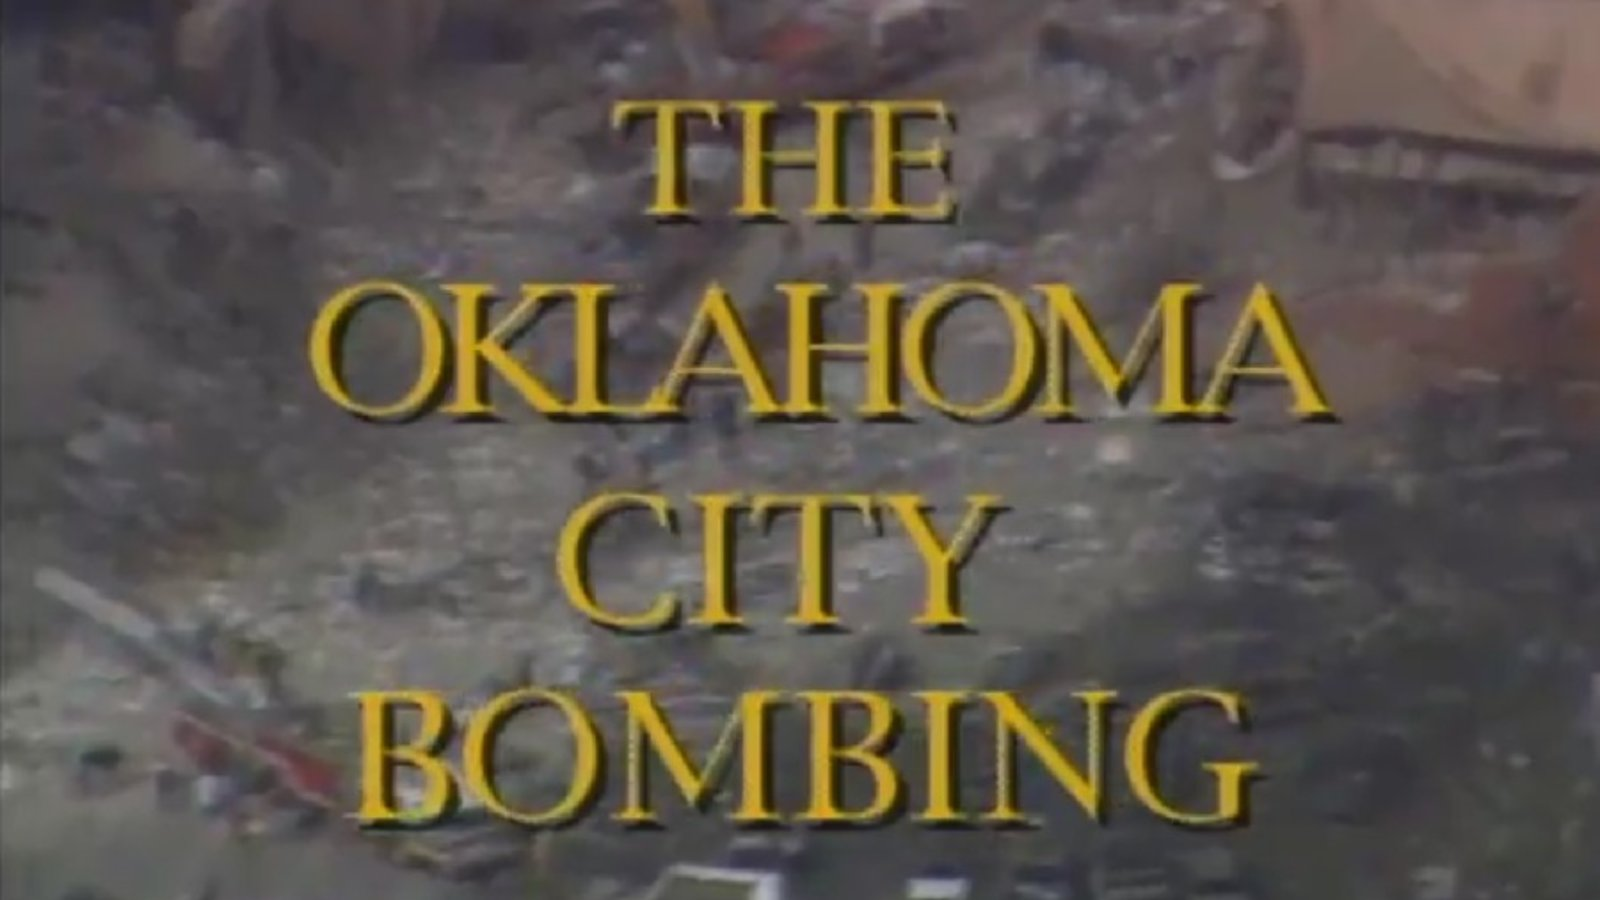 Oklahoma City Bombing - Terrorism in the US